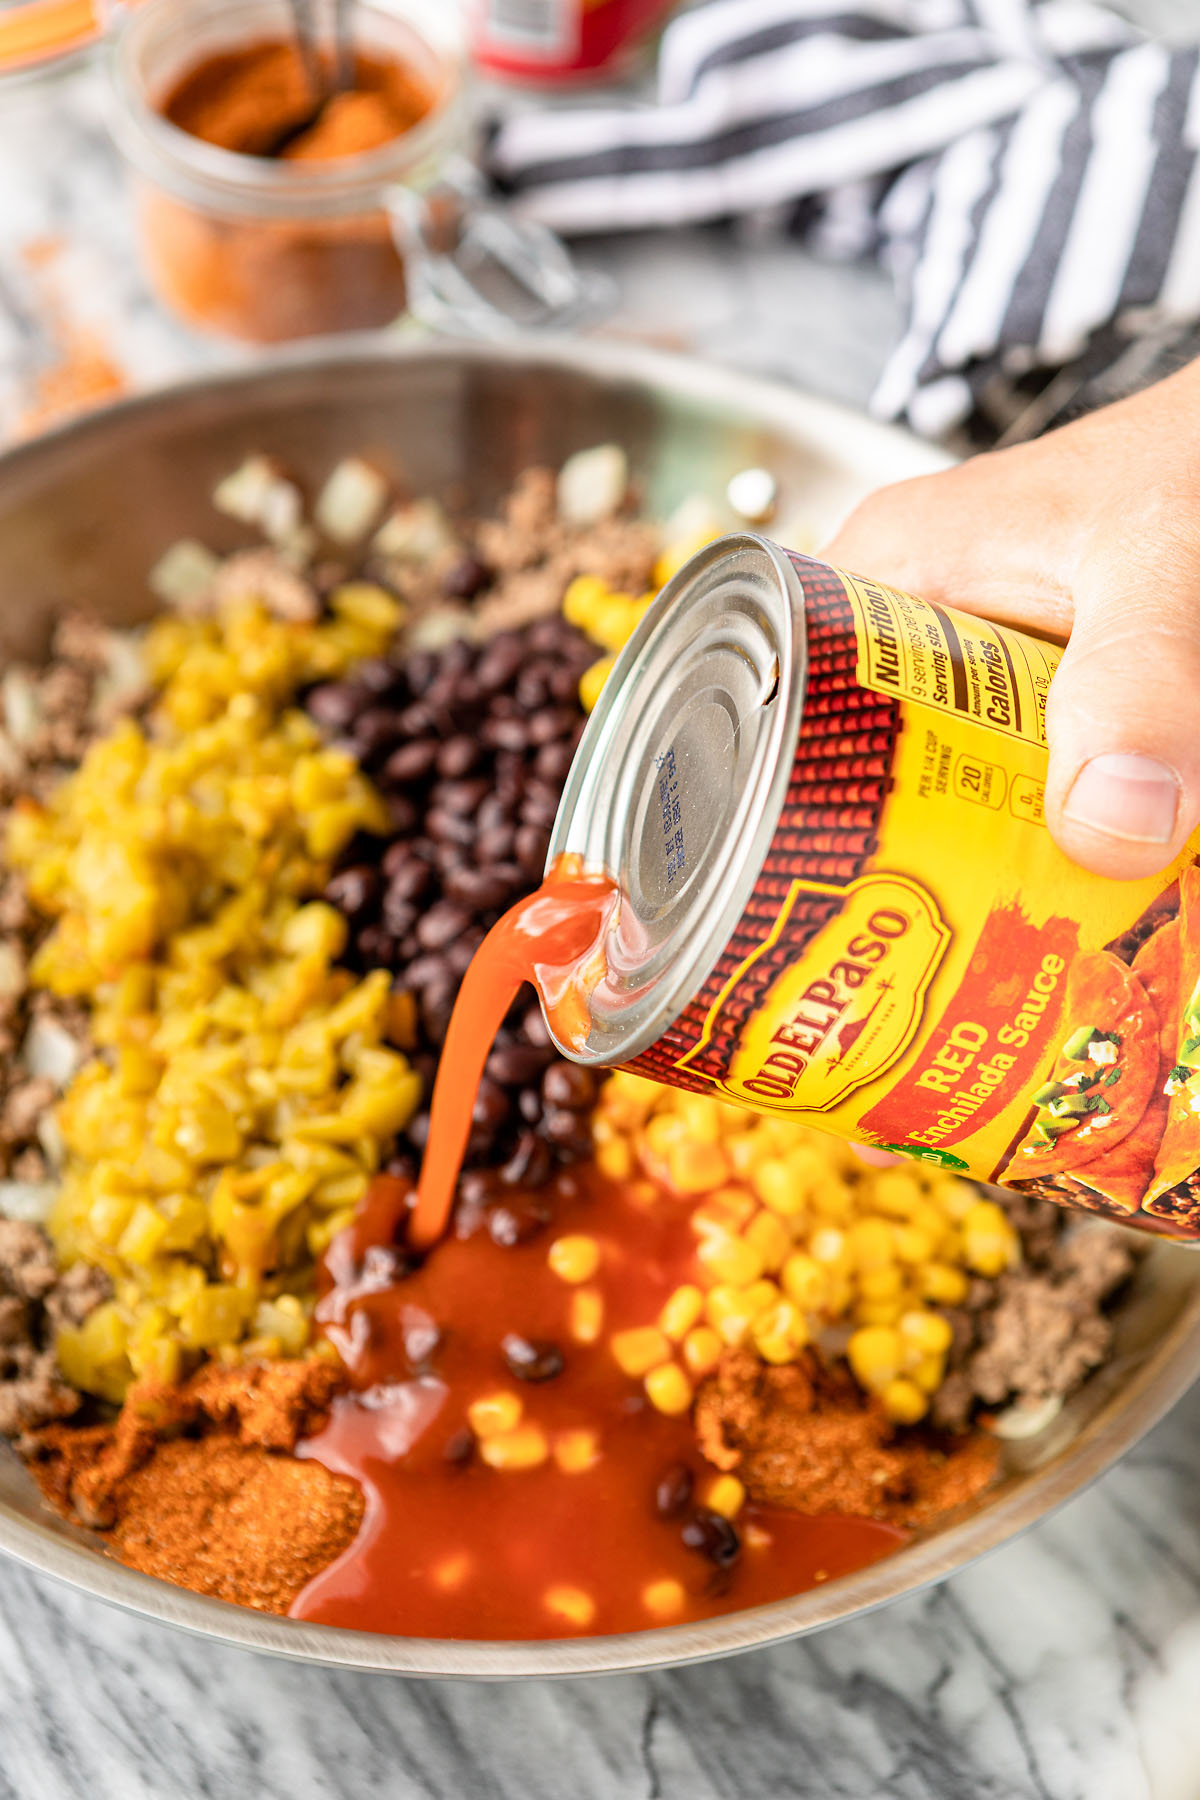 how to make tater tot casserole hand pouring enchilada sauce into ground beef mixture in skillet